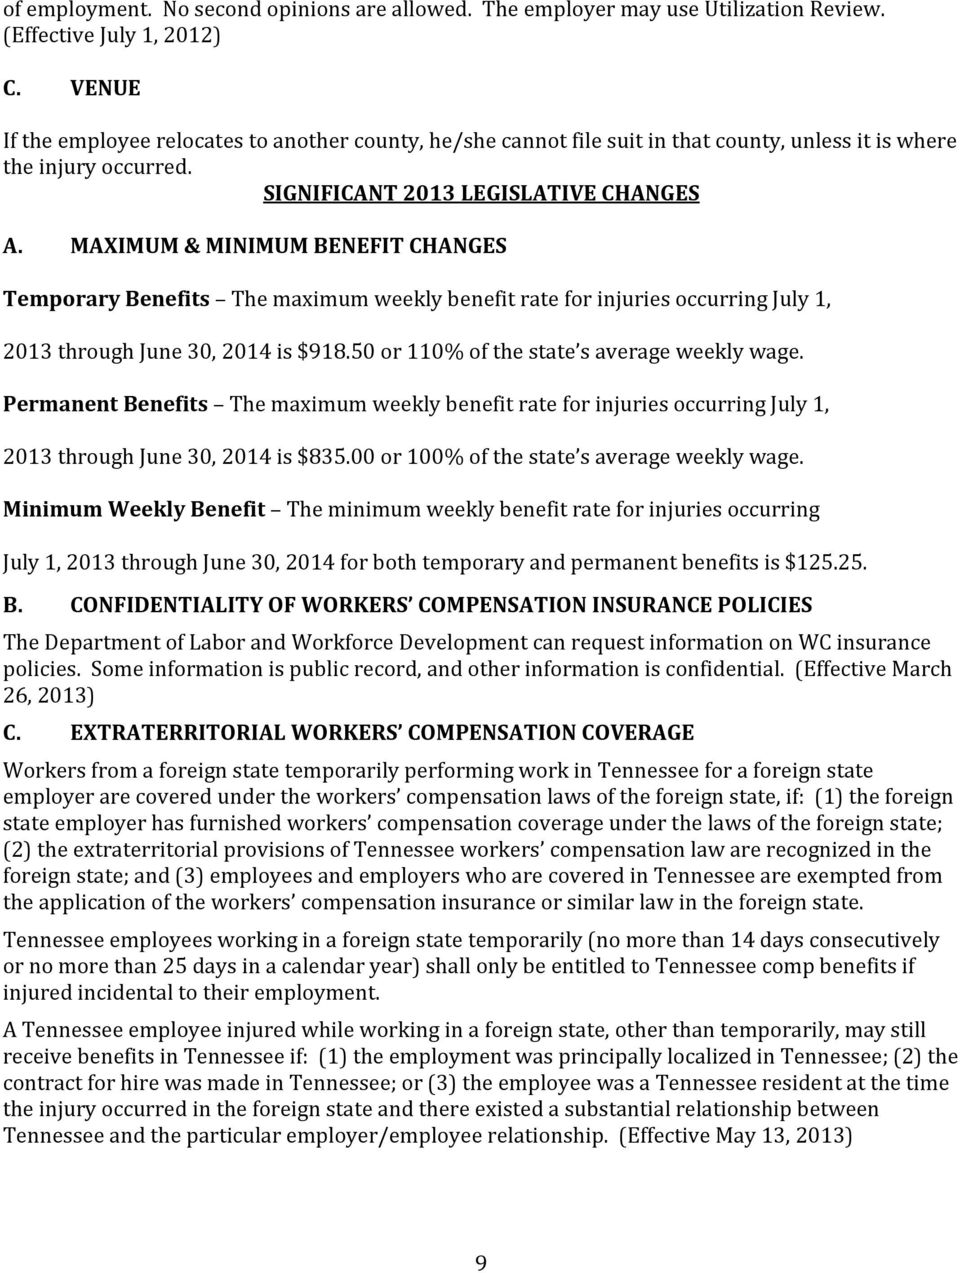 MAXIMUM & MINIMUM BENEFIT CHANGES Temporary Benefits The maximum weekly benefit rate for injuries occurring July 1, 2013 through June 30, 2014 is $918.50 or 110% of the state s average weekly wage.